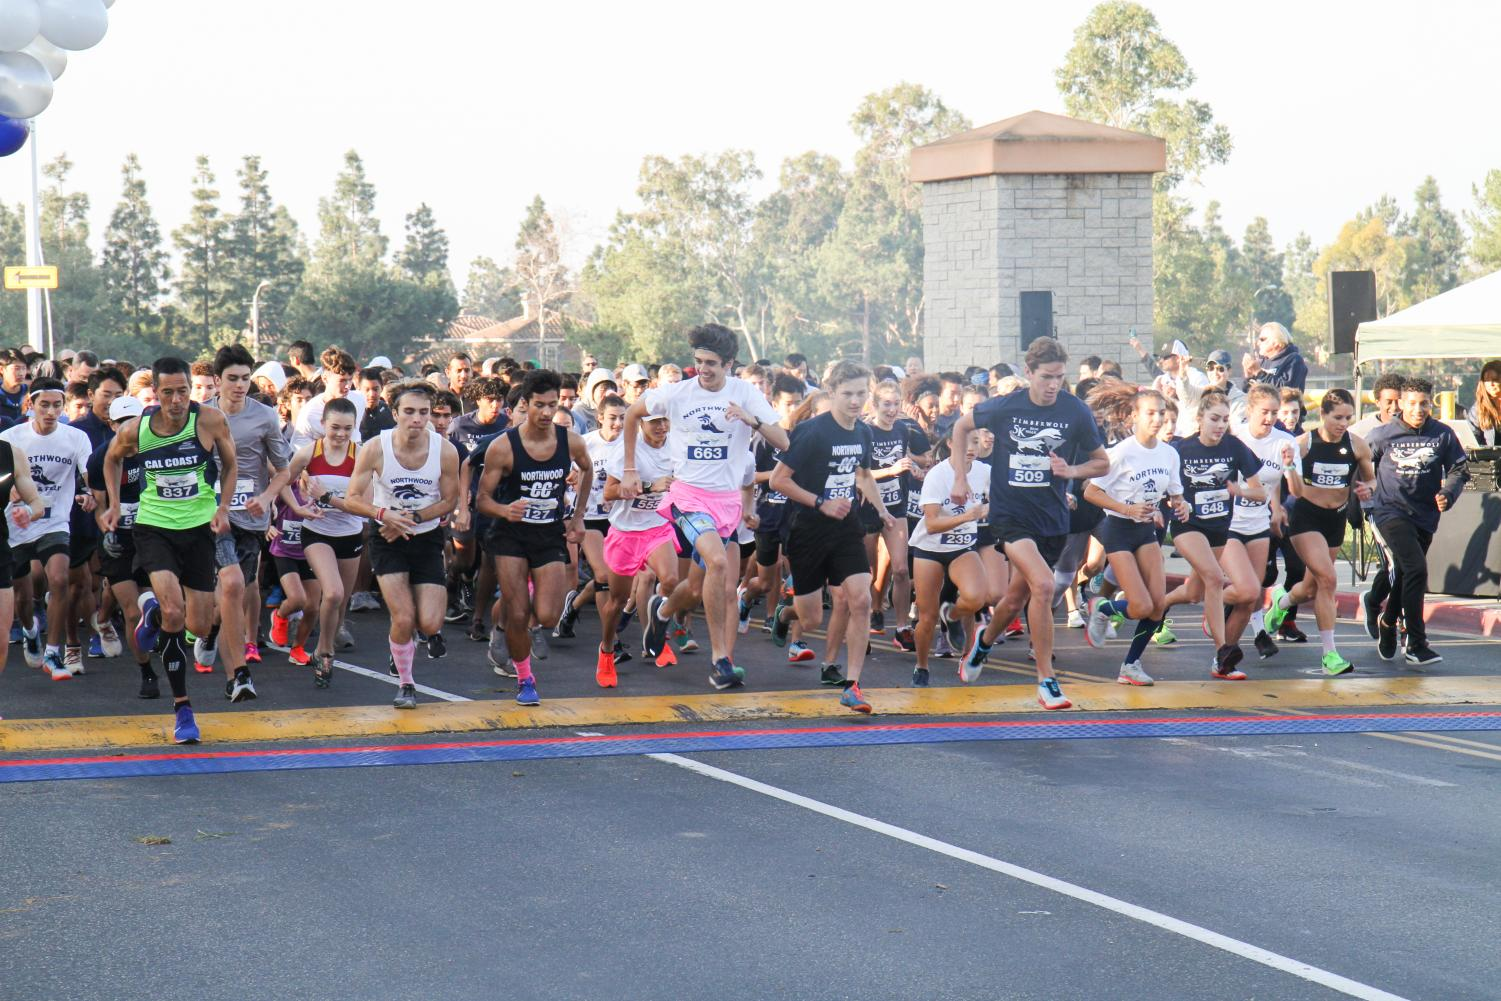 READY, SET, GO: 5k runners take off at the starting line.